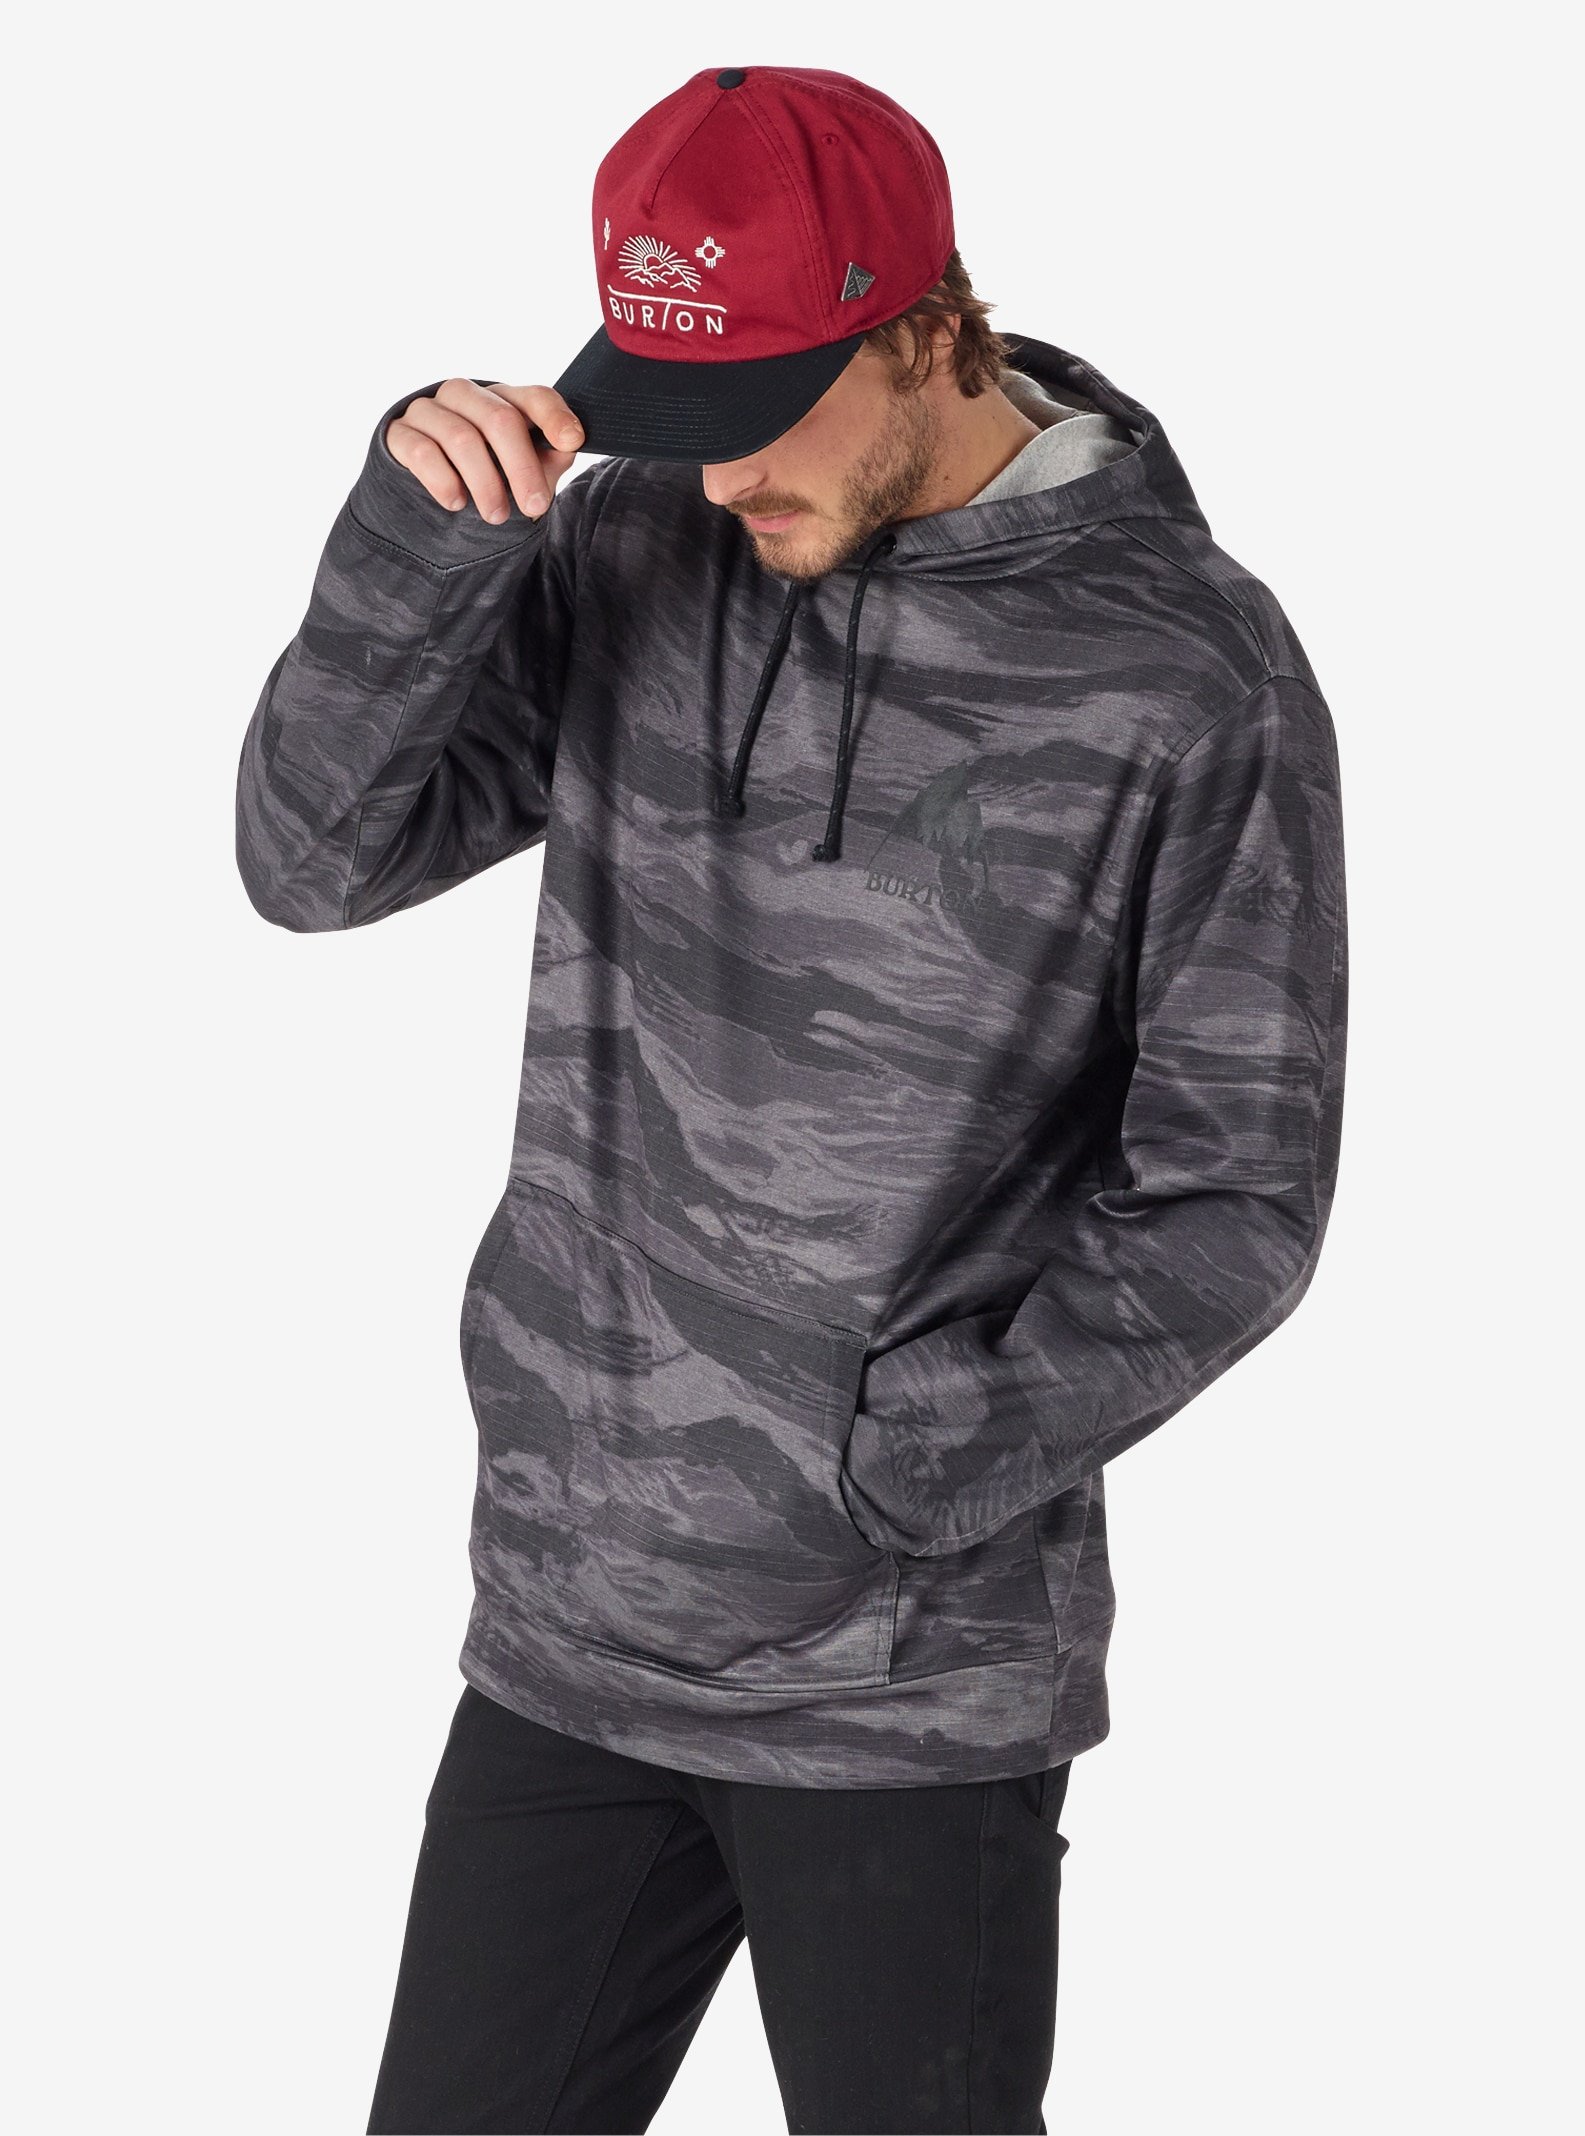 Men's Burton Oak Pullover Hoodie shown in Faded Worn Tiger